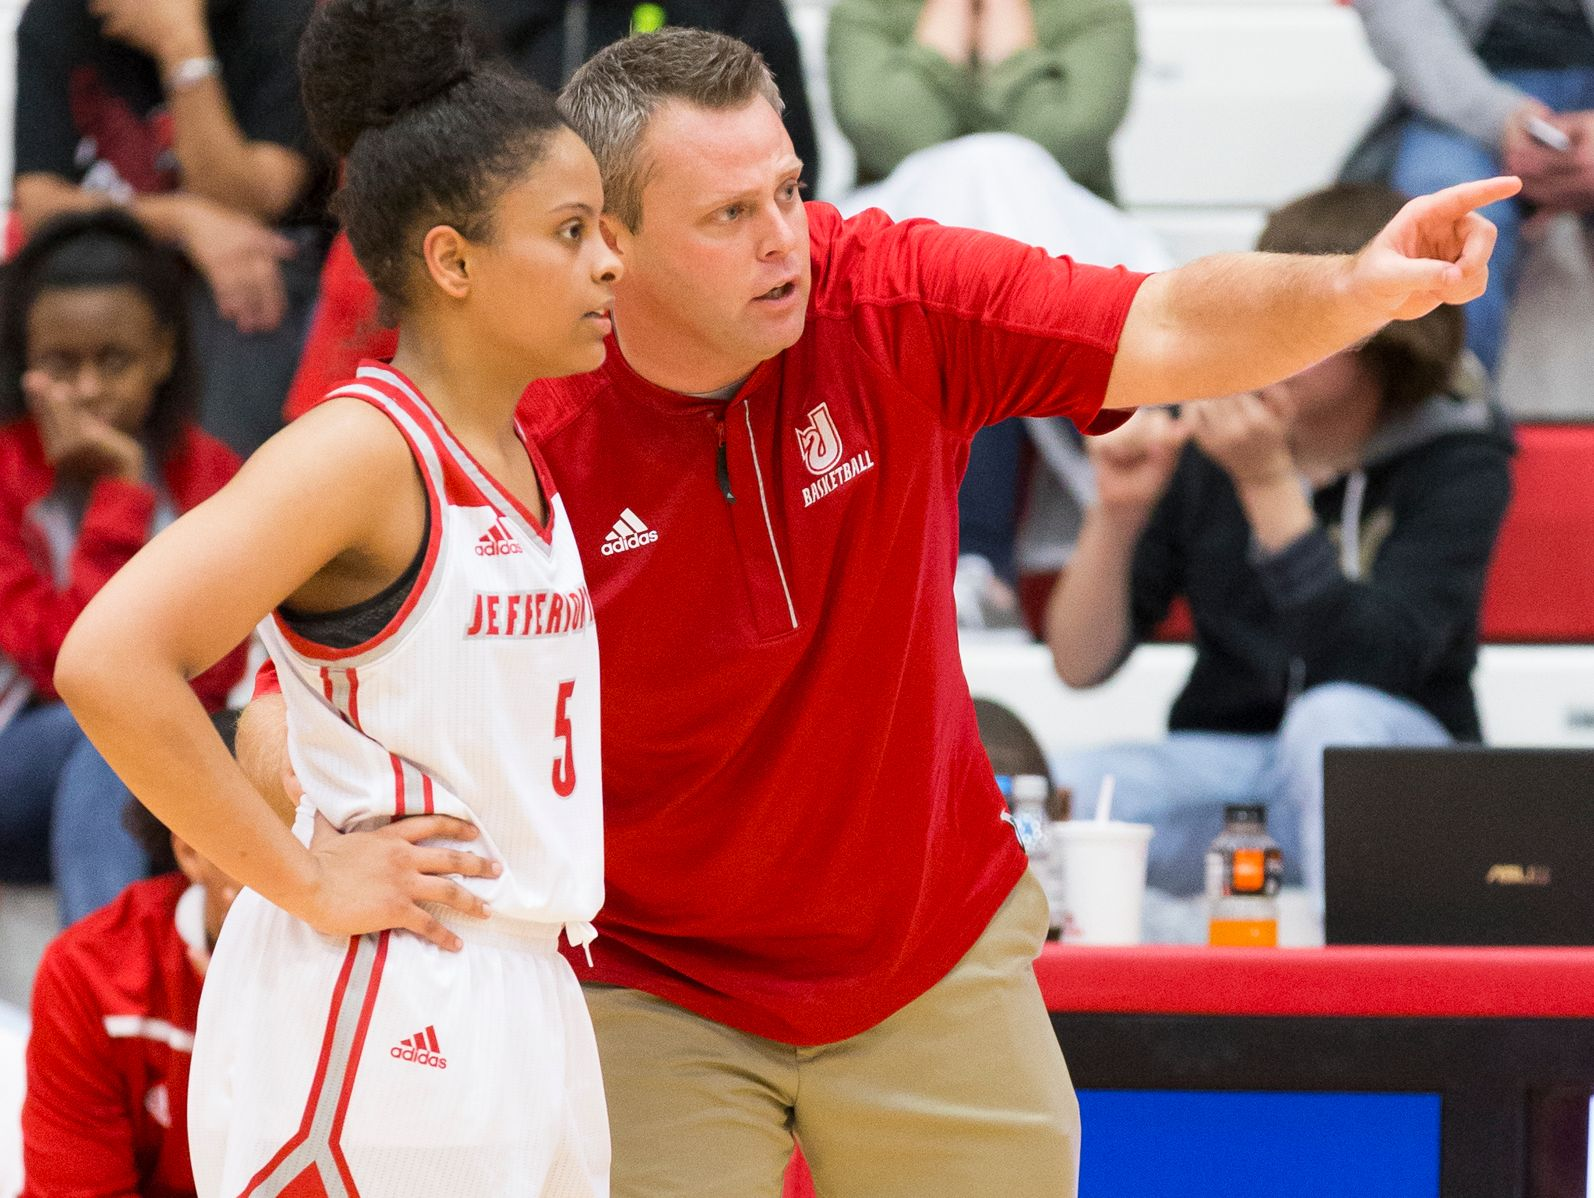 Jeffersonville head coach Mike Warren shares a teaching moment with Jasmine Lilly (5) during a game against Floyd Central at Jeffersonville.